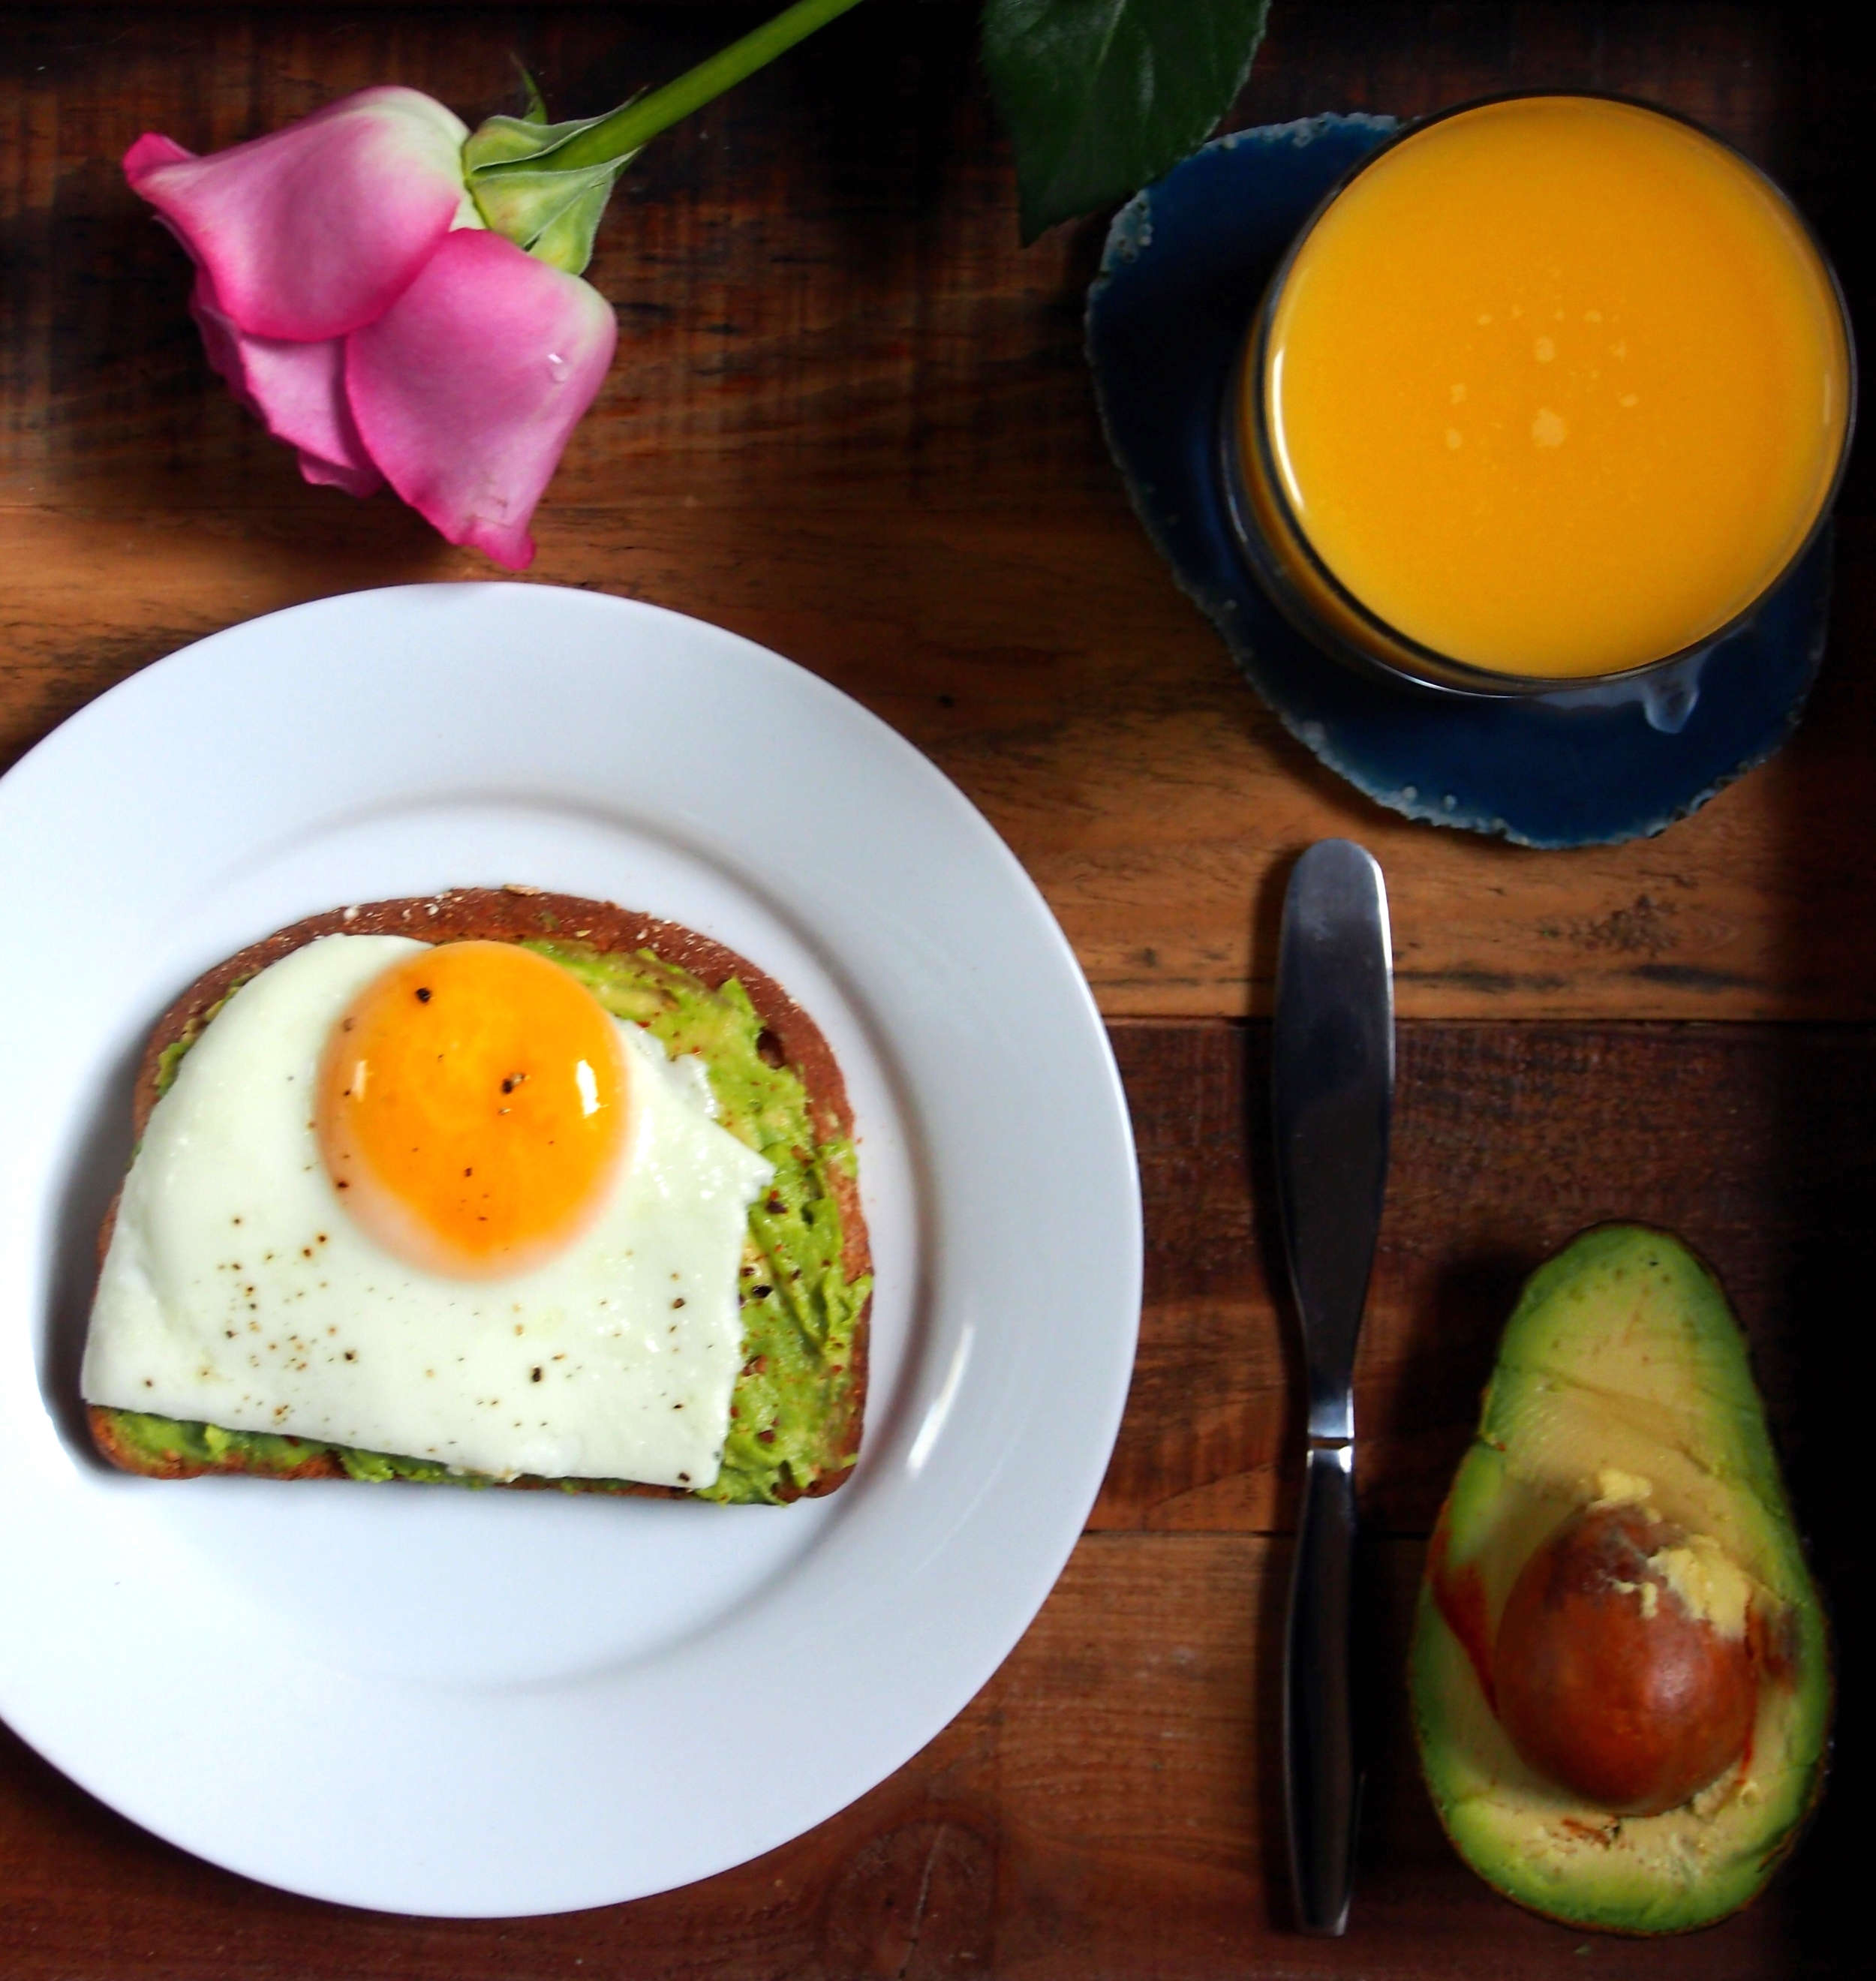 Open-faced sandwich with egg and avocado. Yum!